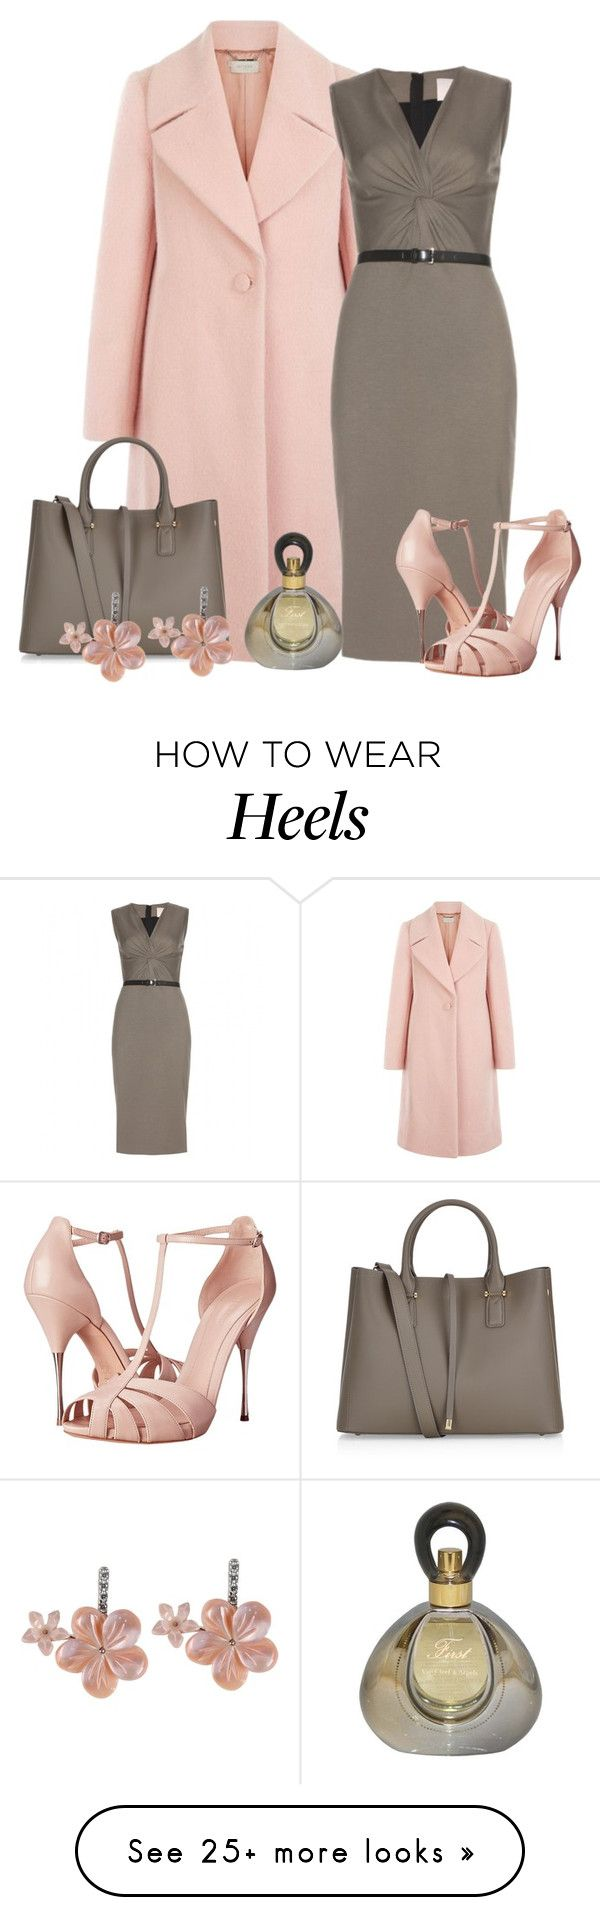 """""""Stretch Jersey Dress With Coat"""" by malathik on Polyvore featuring Hobbs, Accessorize, Jason Wu, First People First, Alexander McQueen, Van Cleef & Arpels, women's clothing, women, female and woman"""